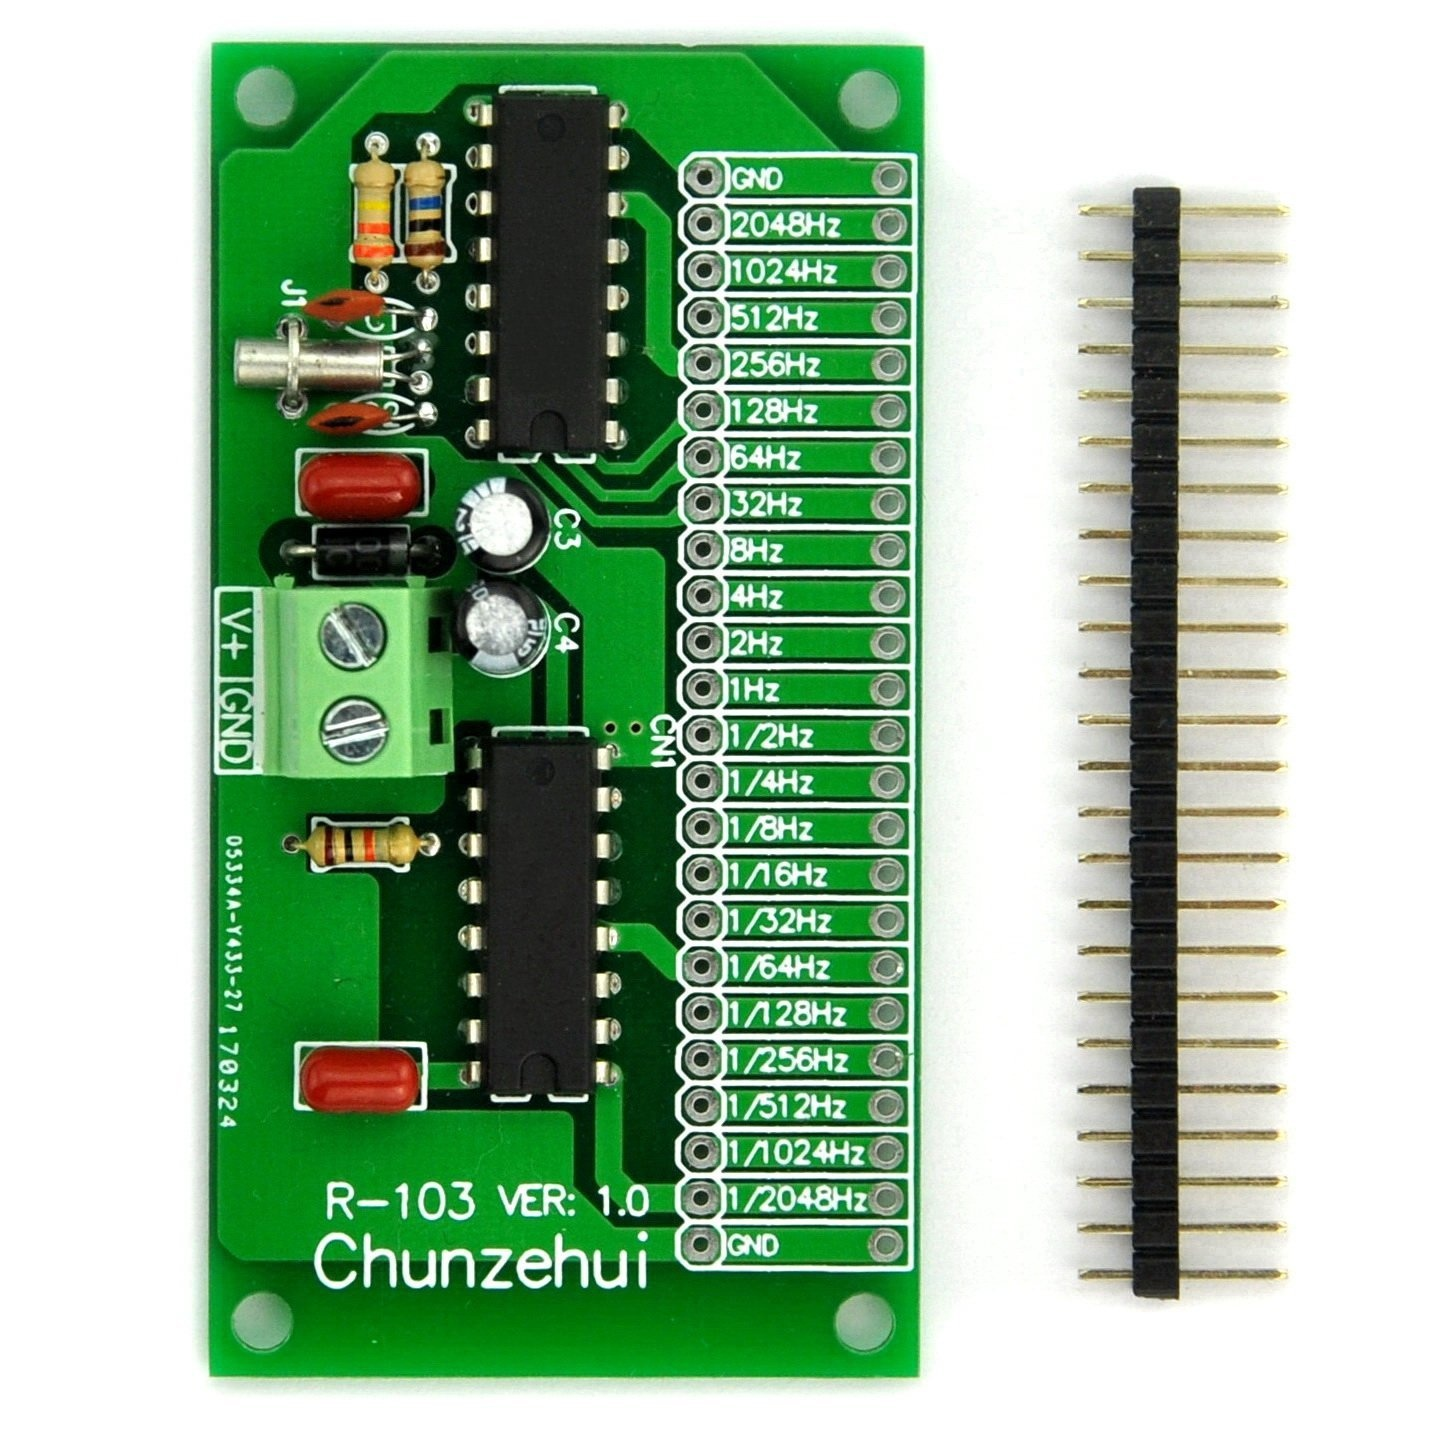 Chunzehui 2048hz 000049hz1 Extremely Super Low Square Wave Oscillator Circuit Frequency Module Signal Generator Total 22 Output Ports